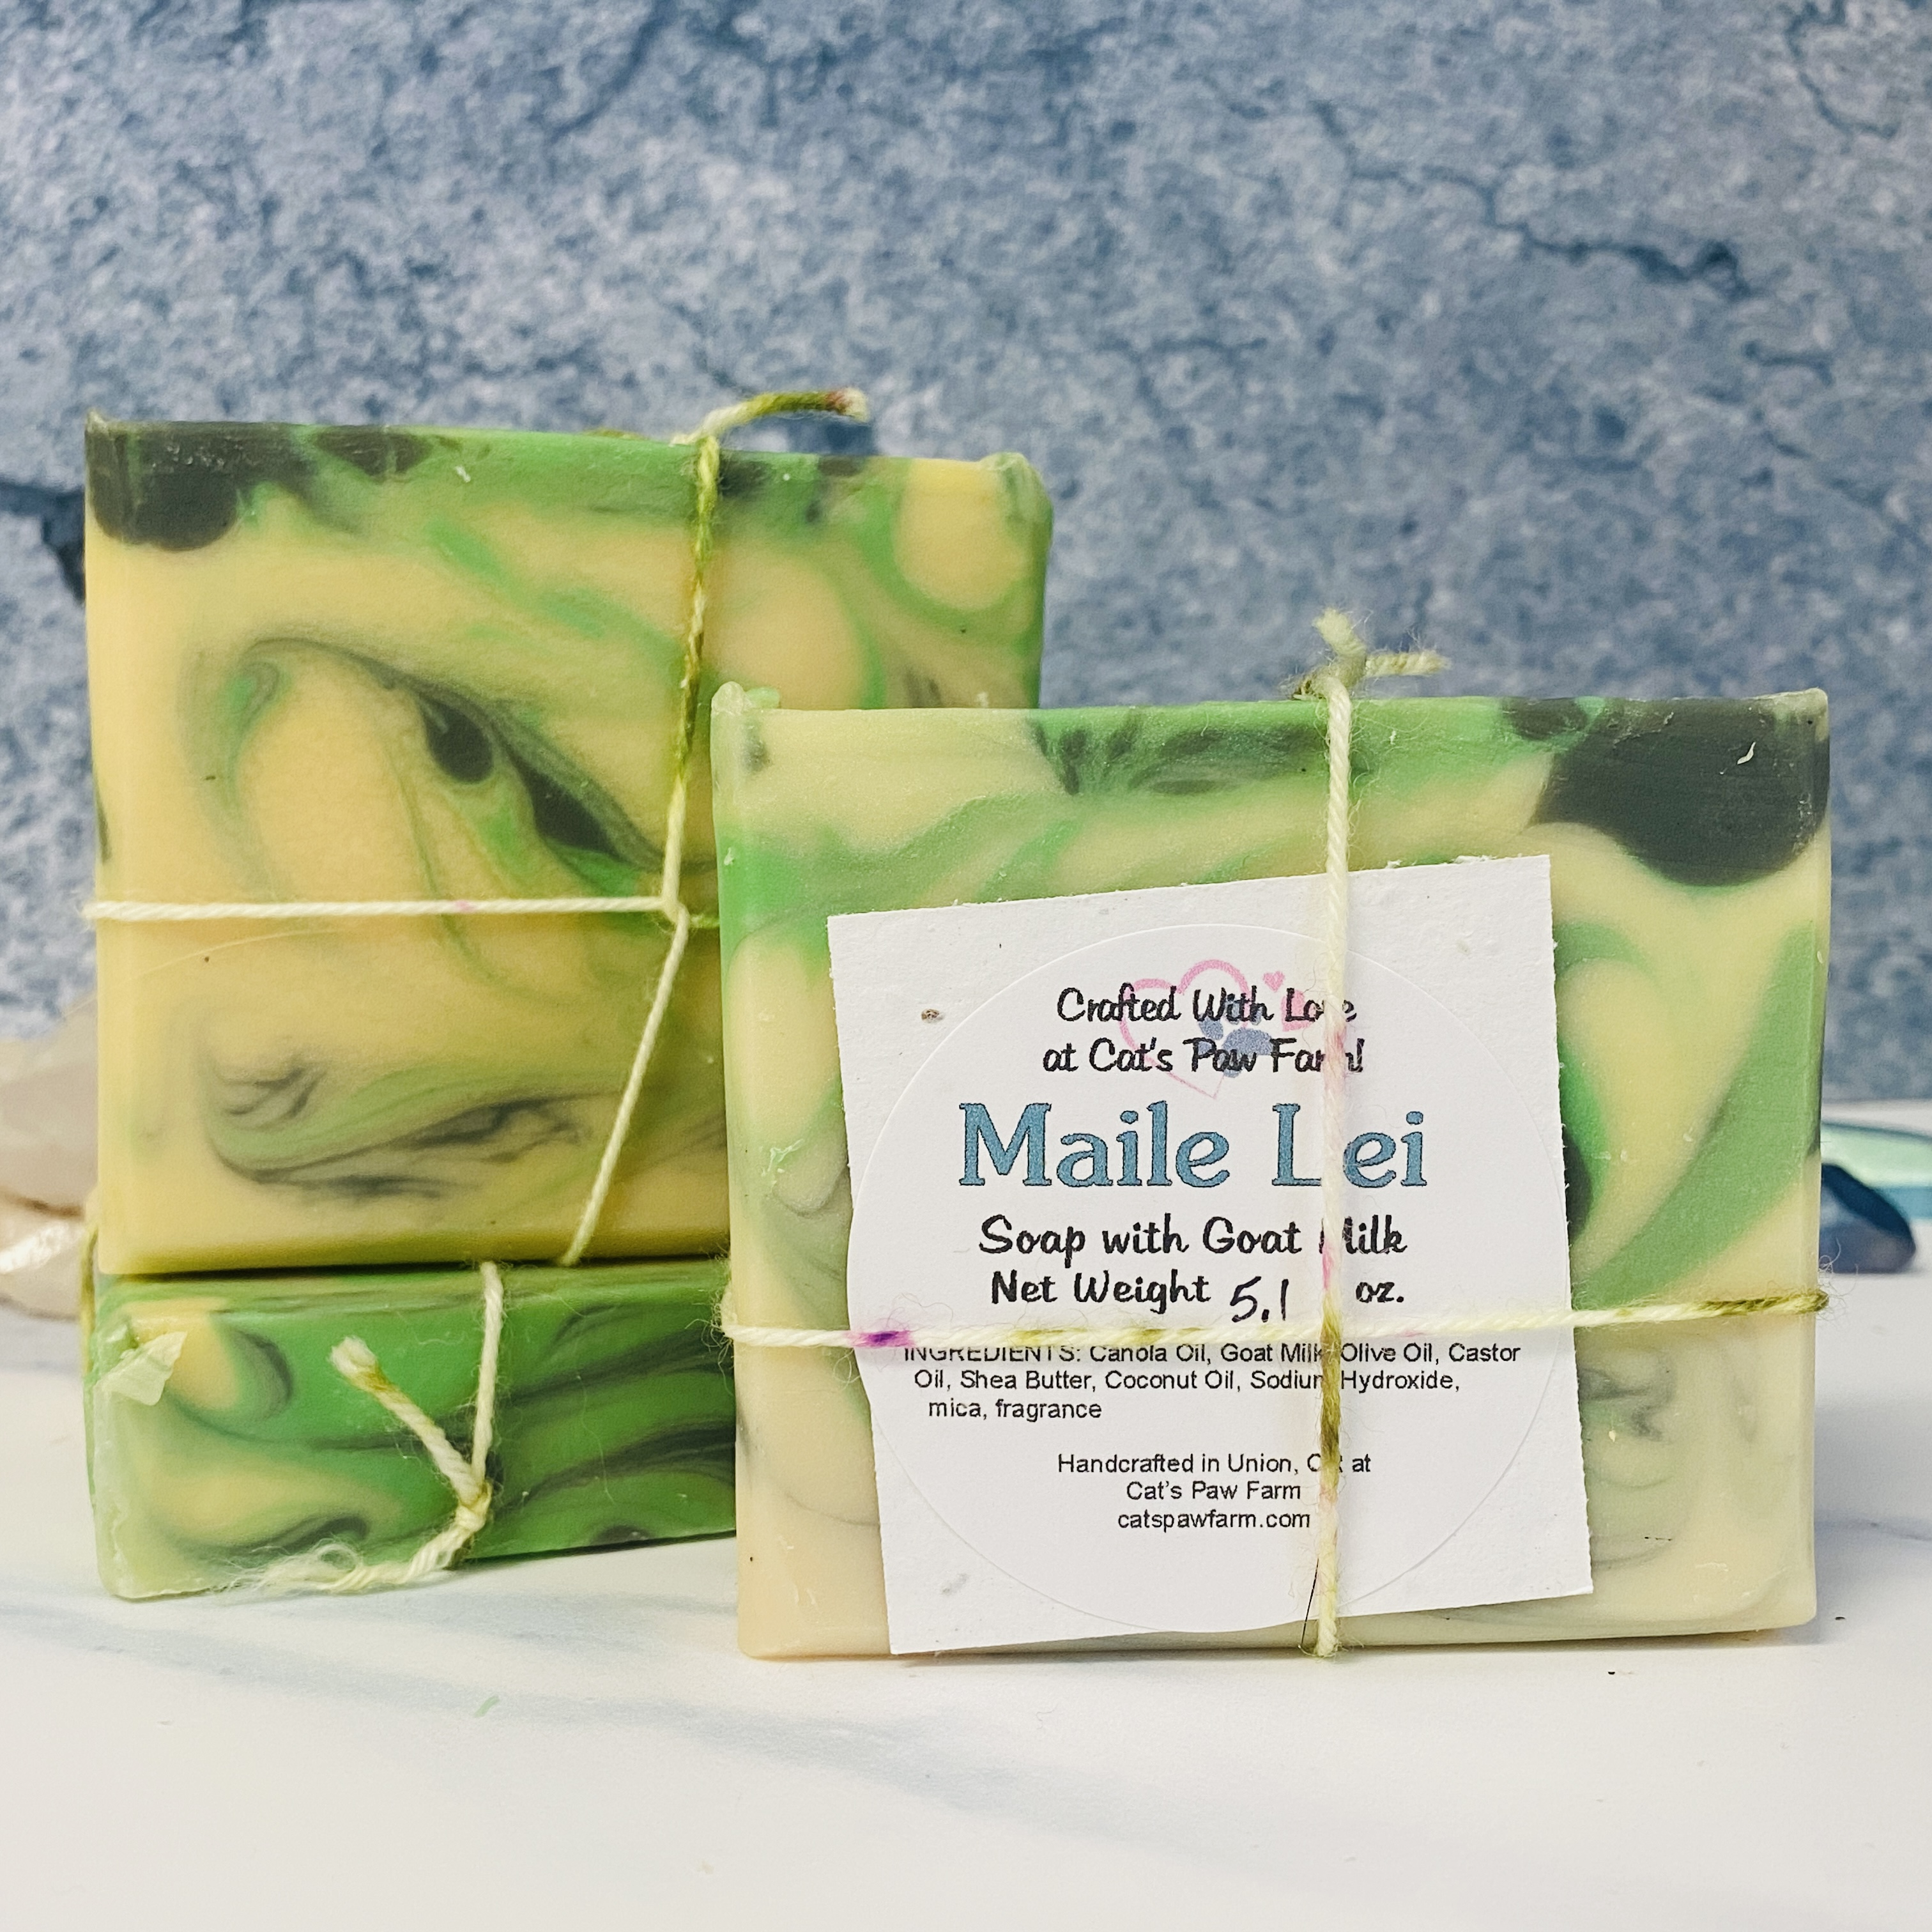 Maile Lei Scented Soap with Goat Milk